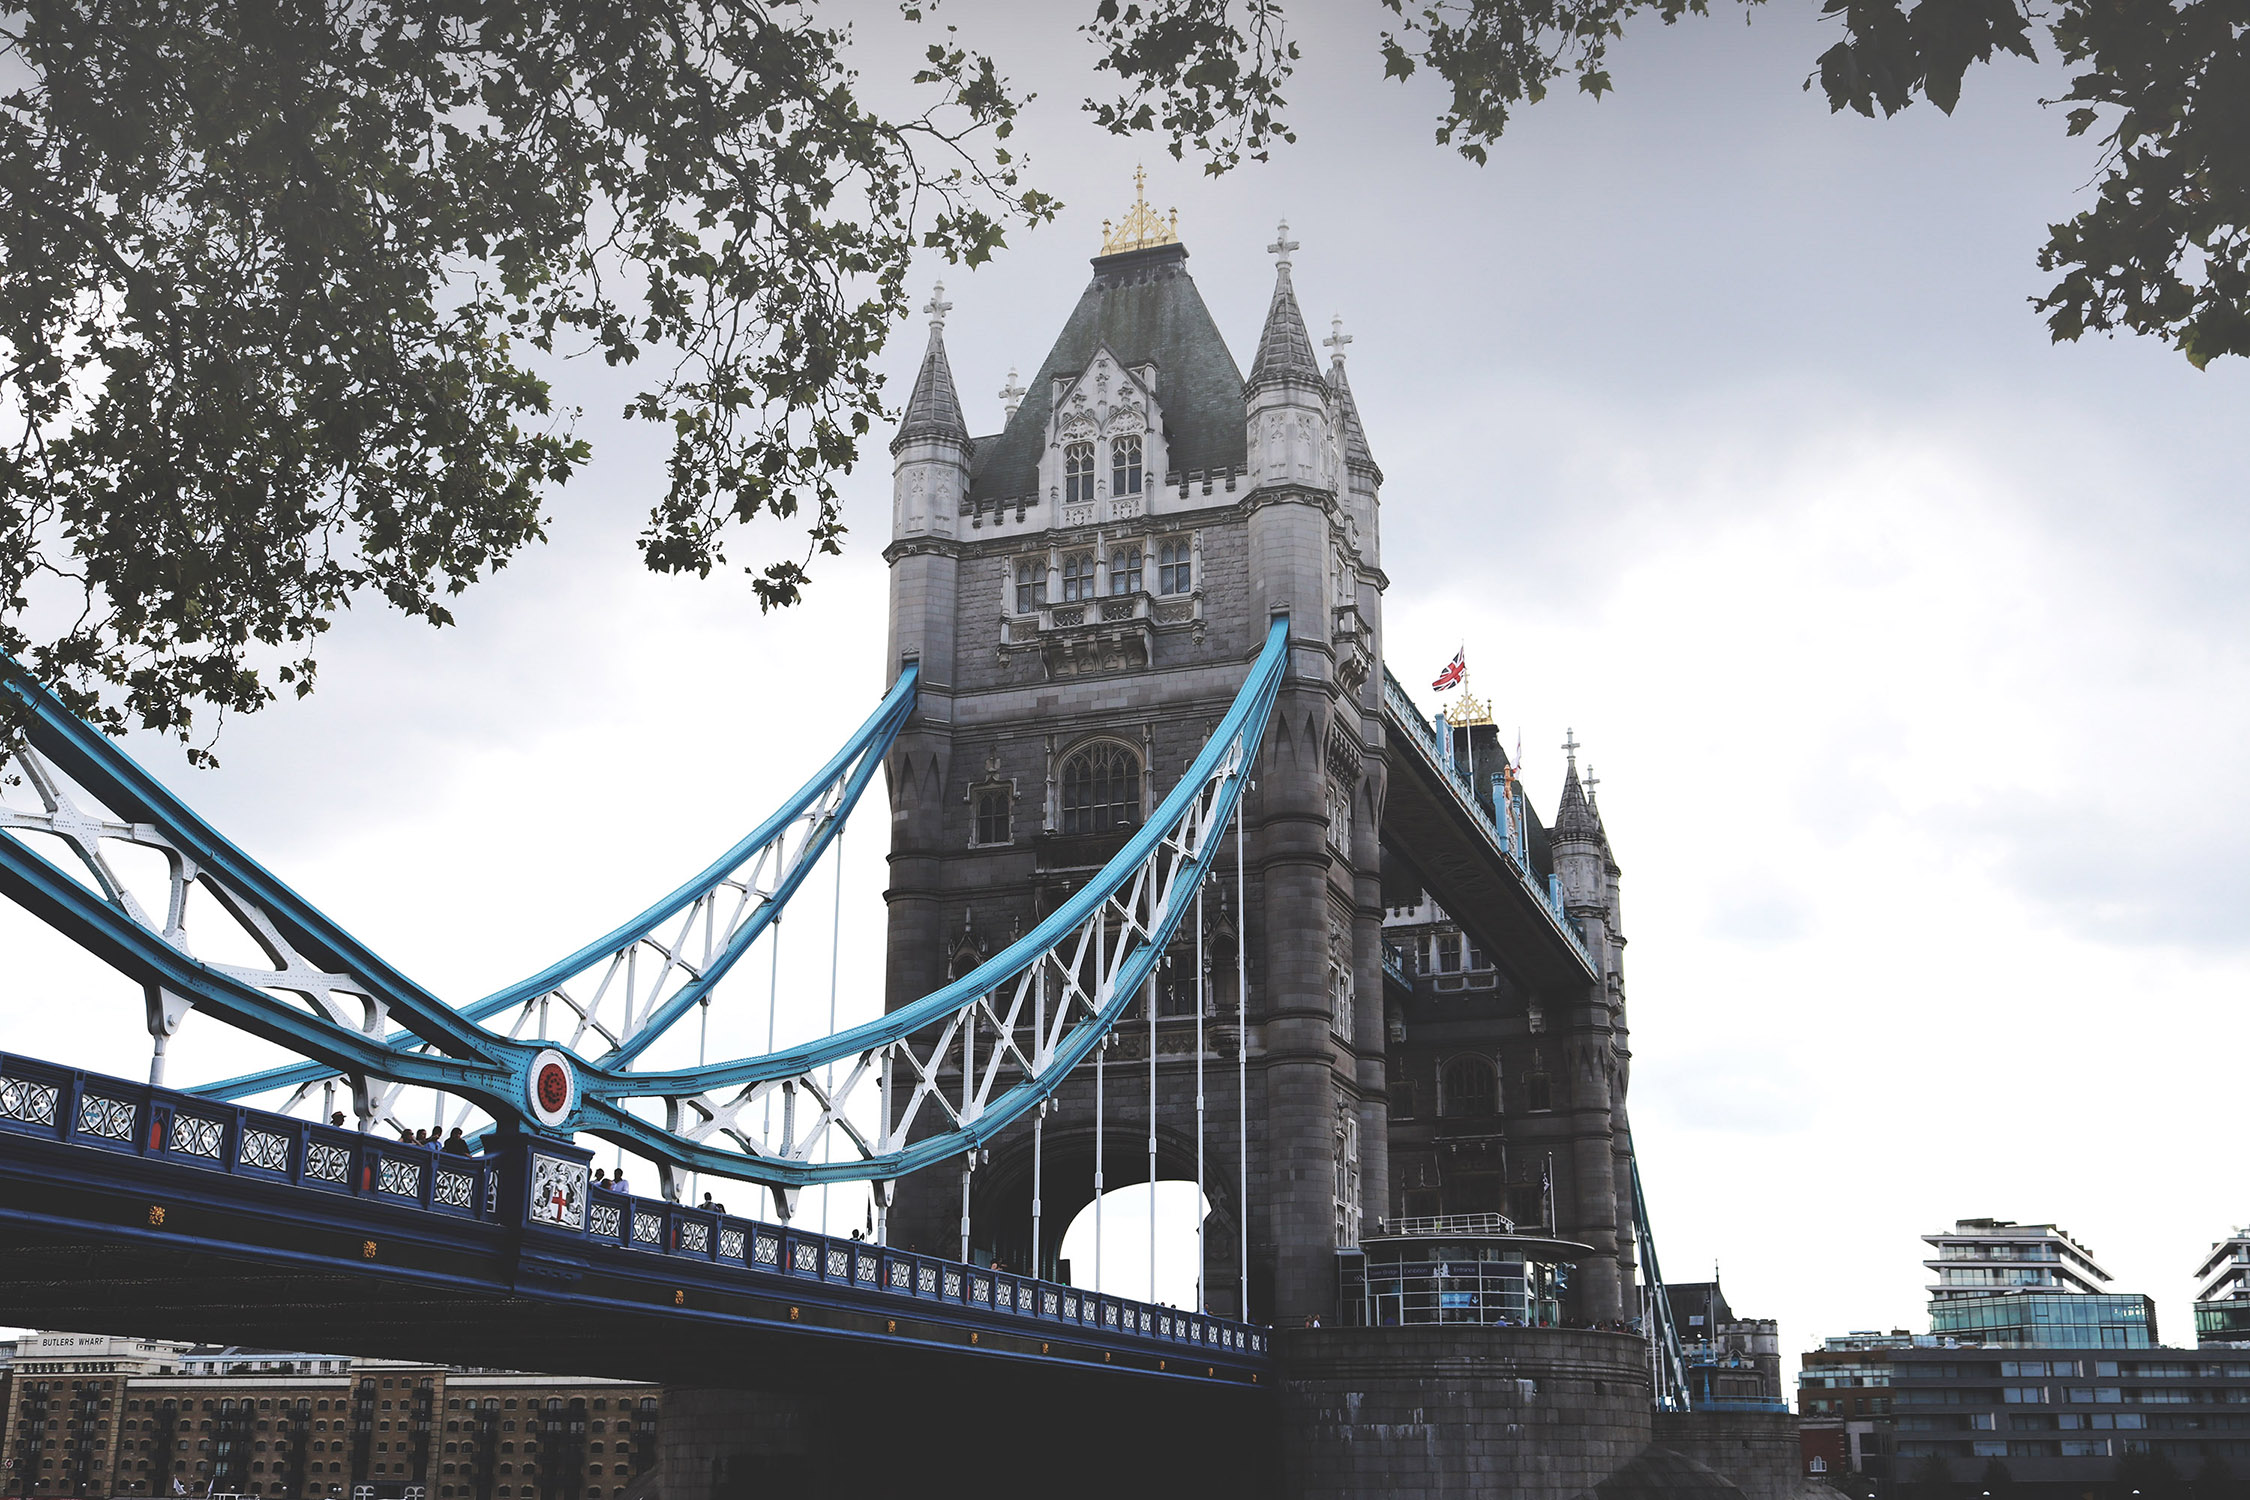 TOWER BRIDGE – ST PAUL'S CATHEDRAL